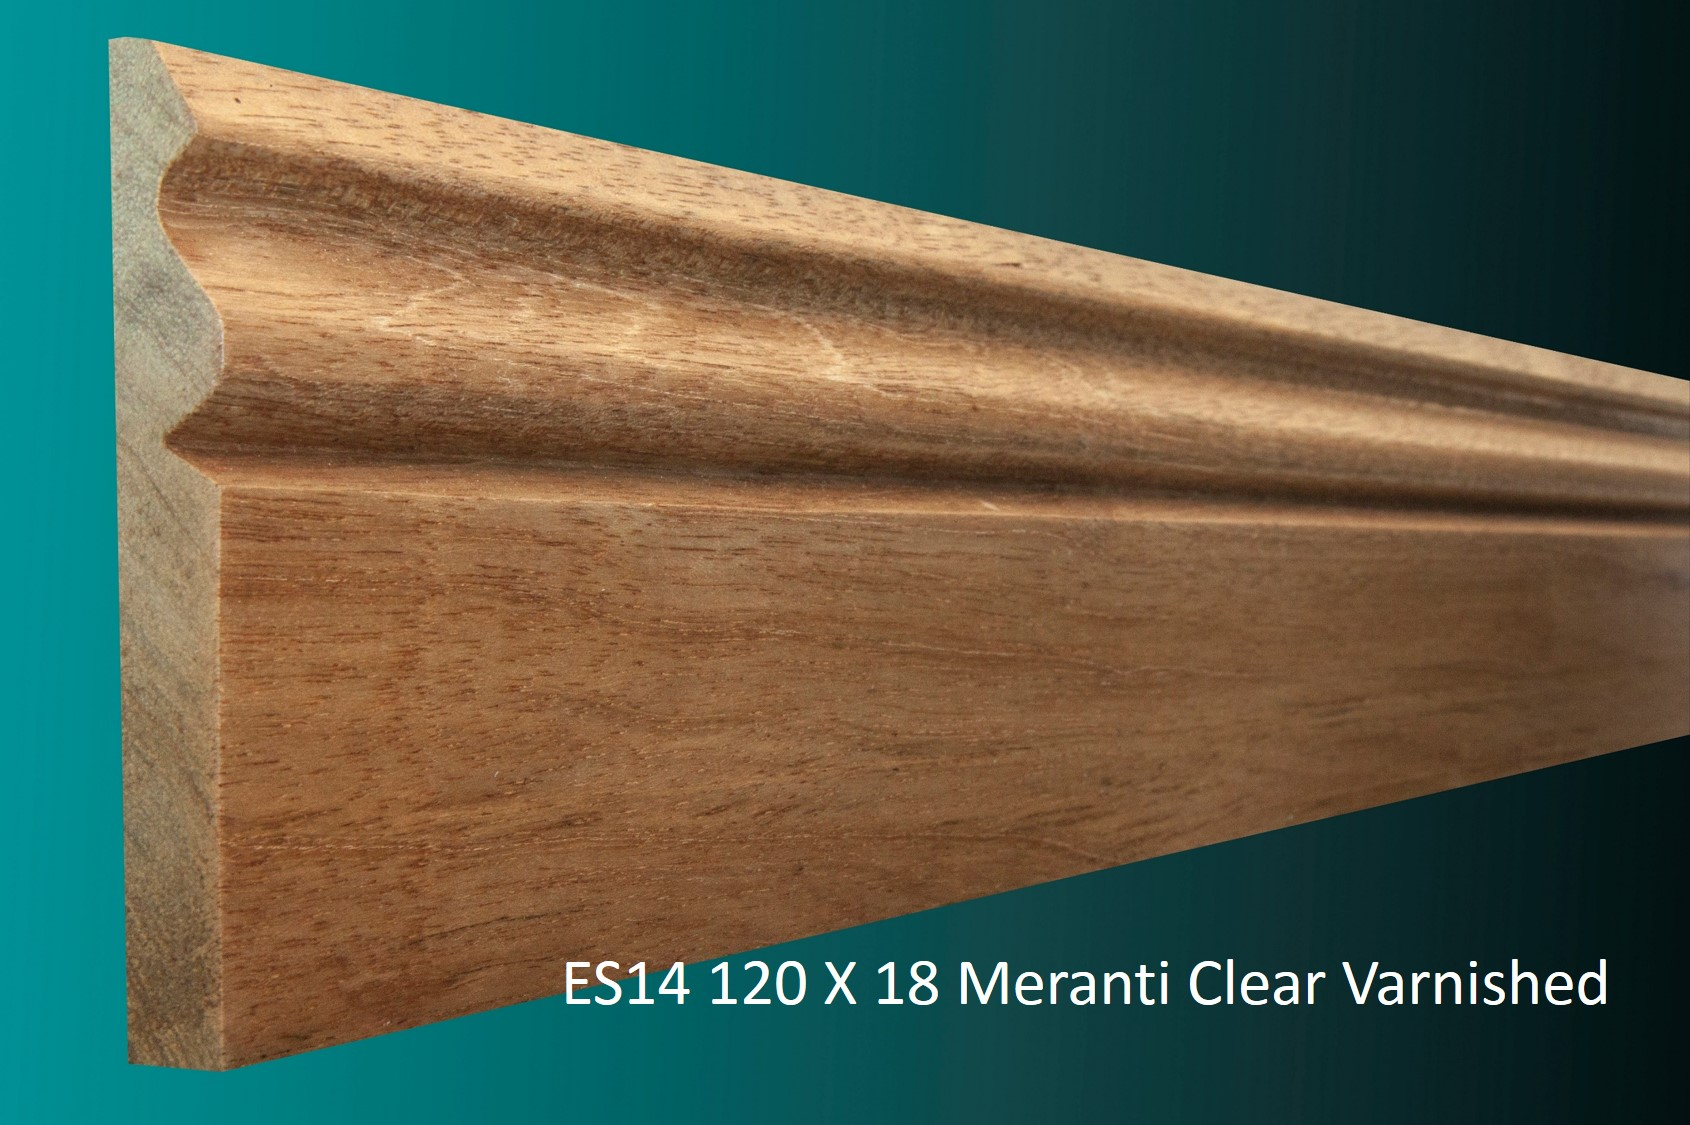 ES14 120 X 18 Meranti Clear Varnished